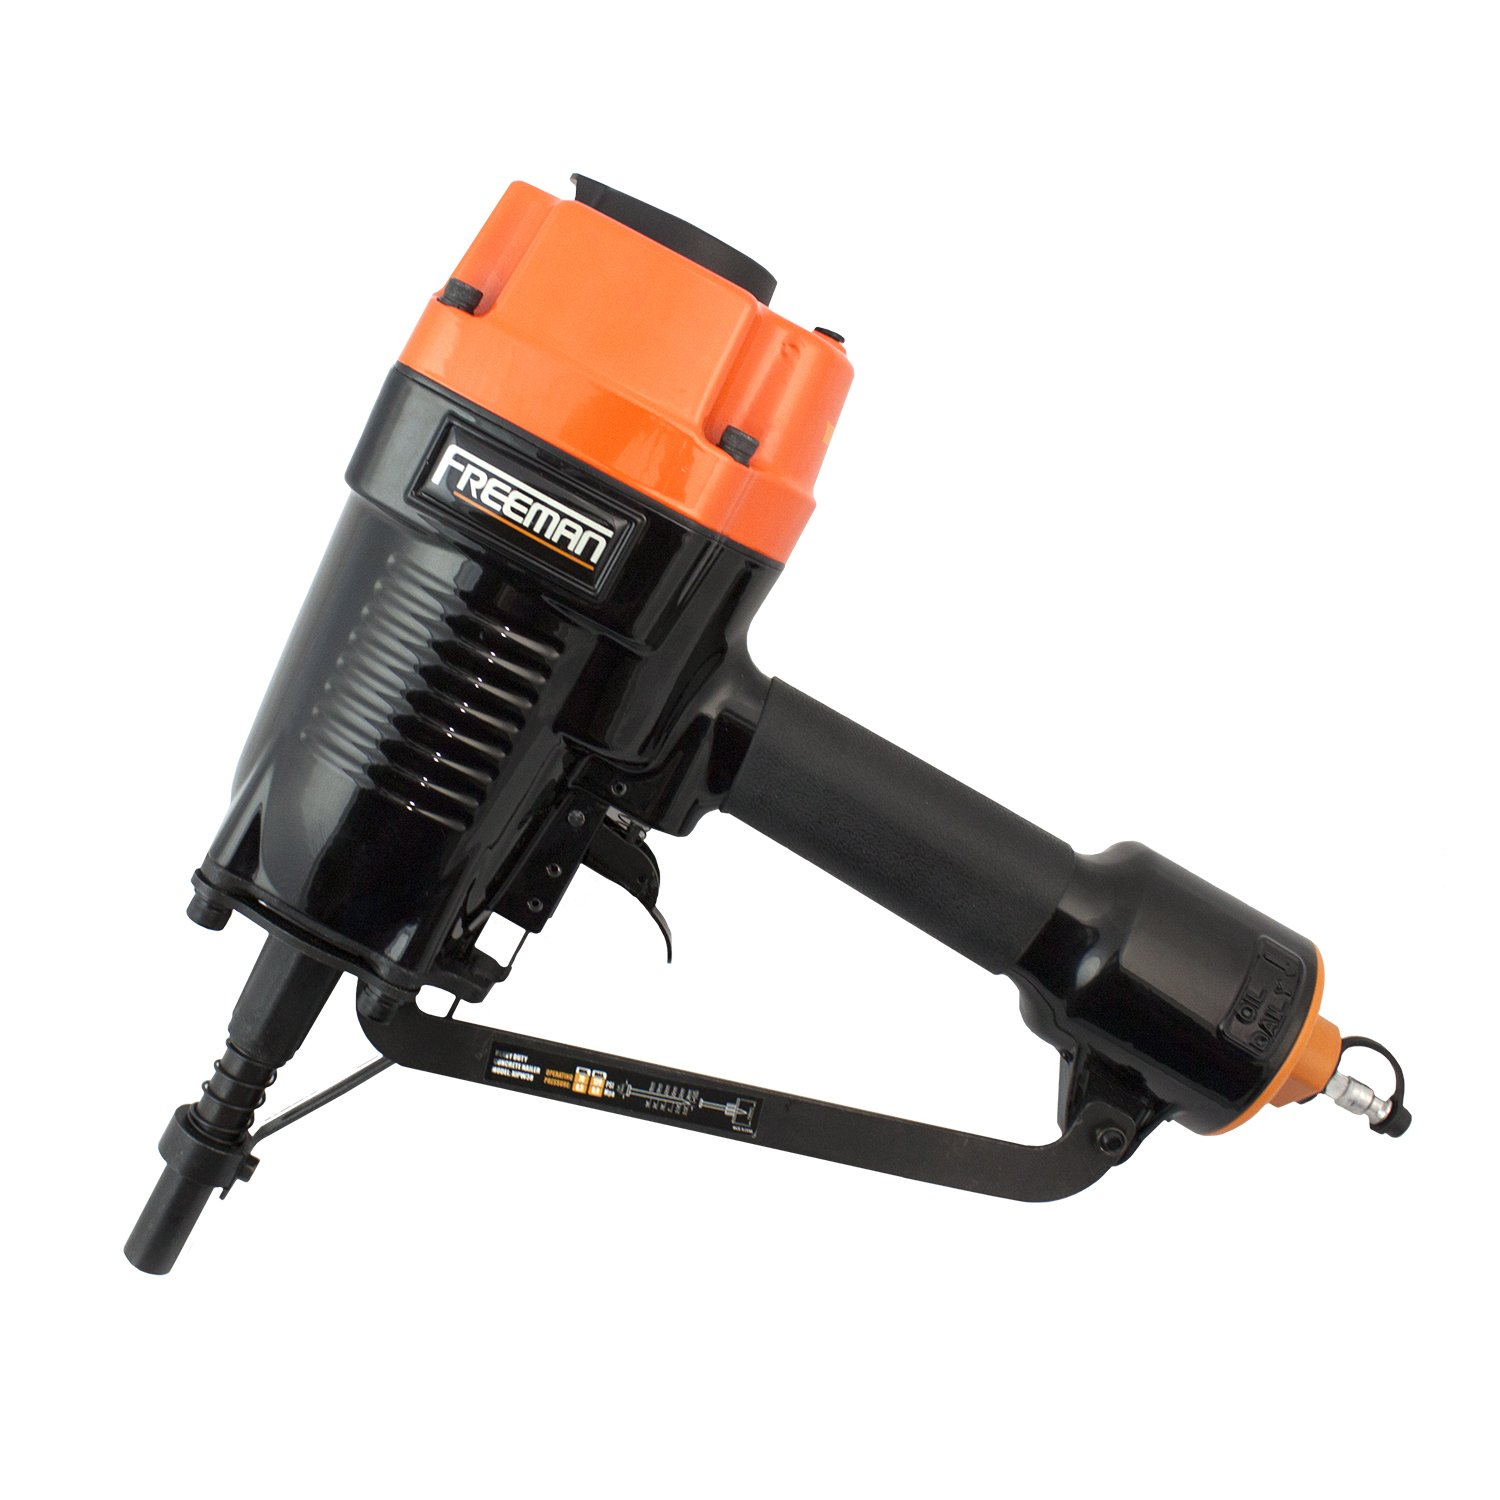 Freeman PSSCP Pneumatic Single Pin Concrete Nailer